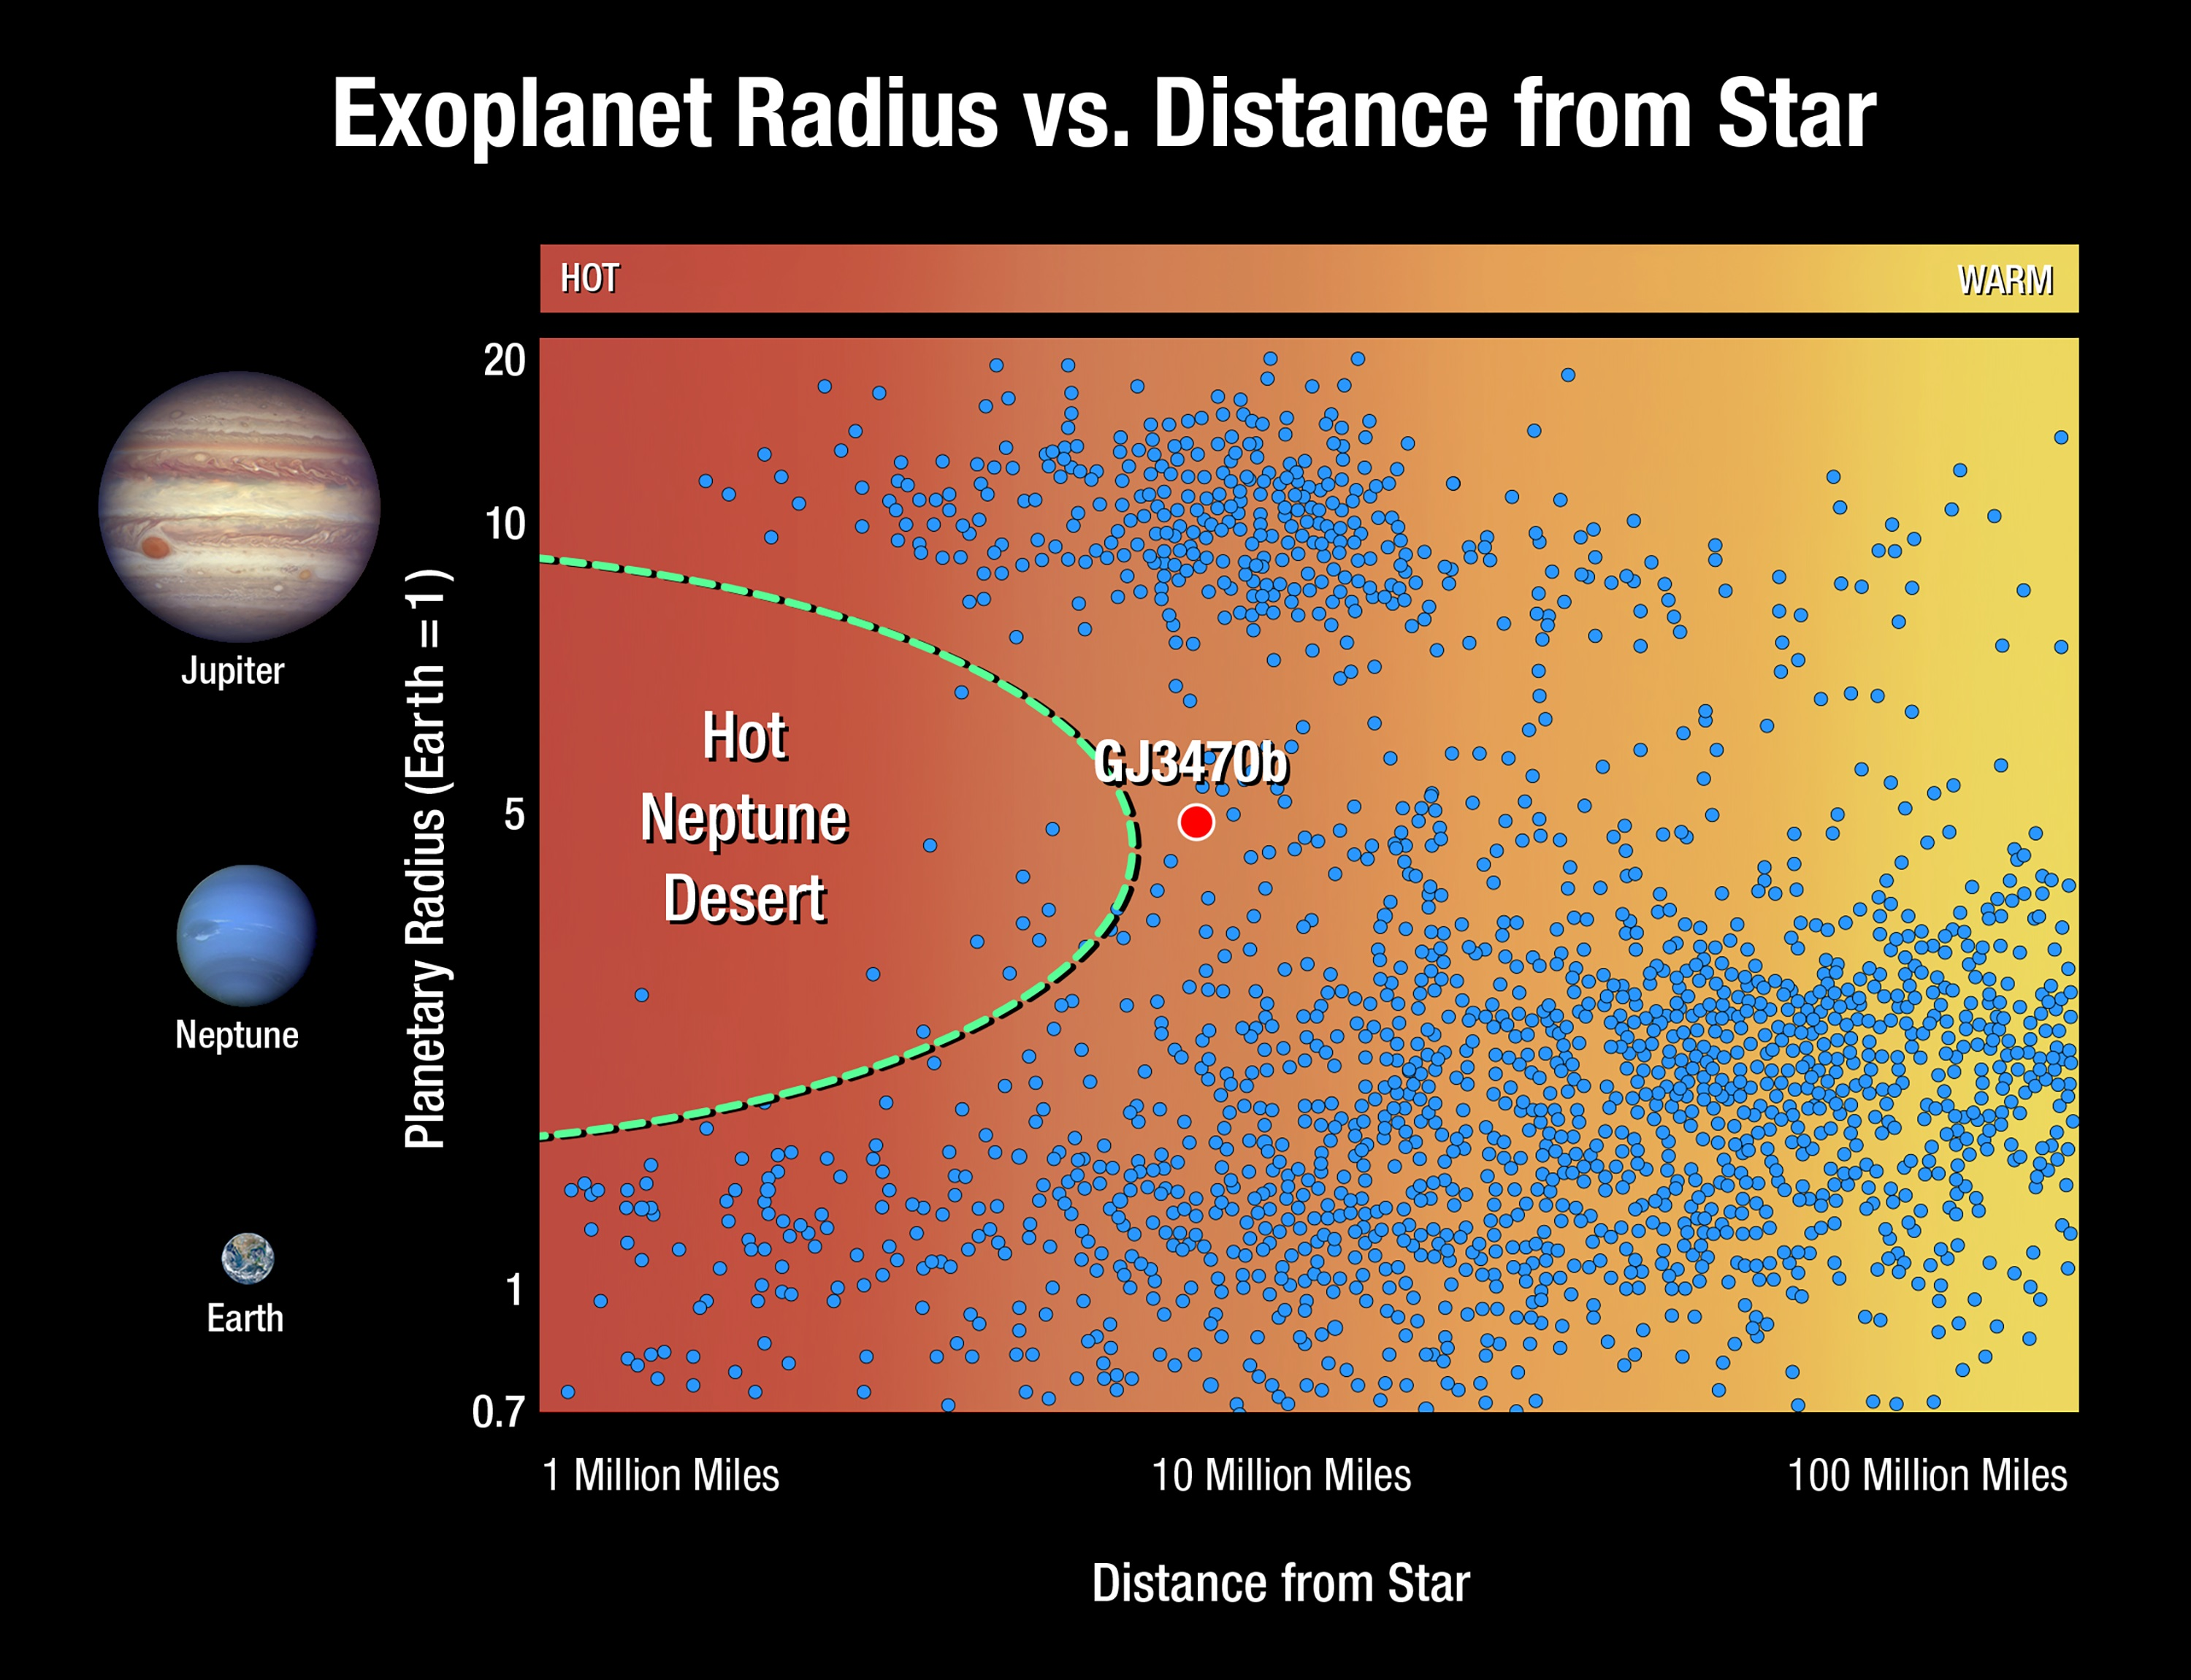 This graphic plots exoplanets based on their size and distance from their star.